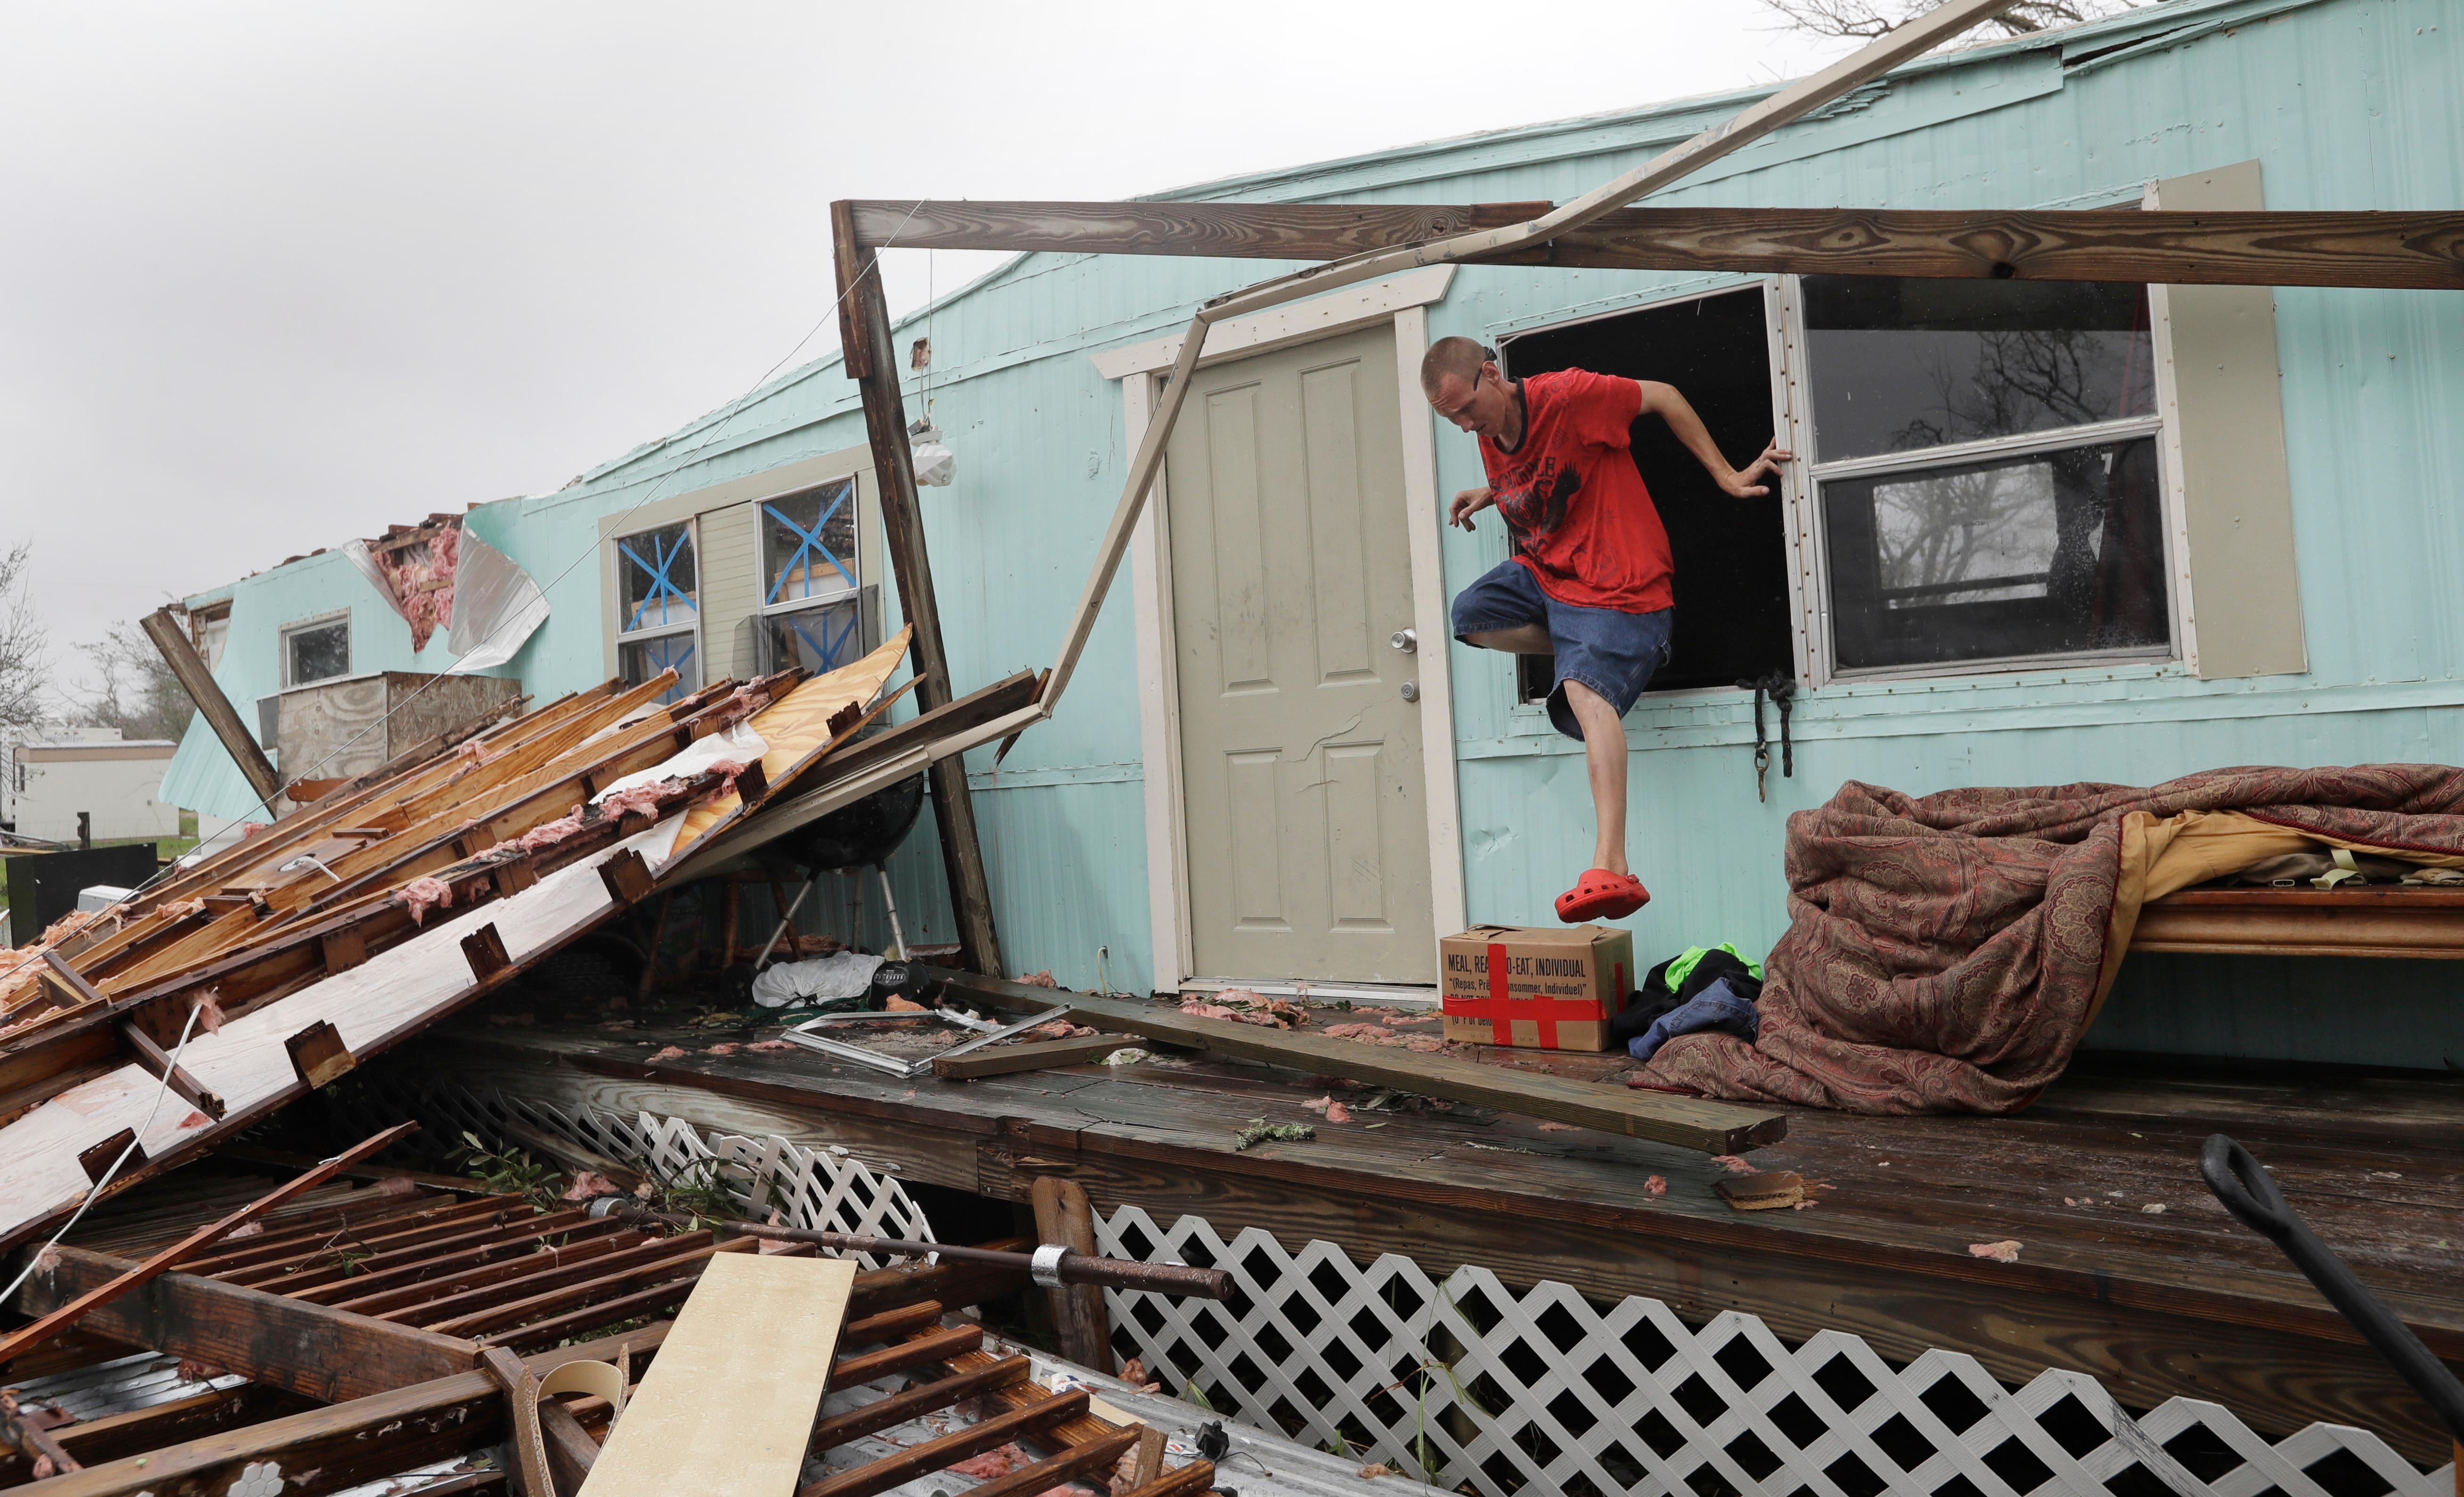 Sam Speights exits a window of his home that was destroyed in the wake of Hurricane Harvey, Monday, Aug. 28, 2017, in Rockport, Texas. (AP Photo/Eric Gay)